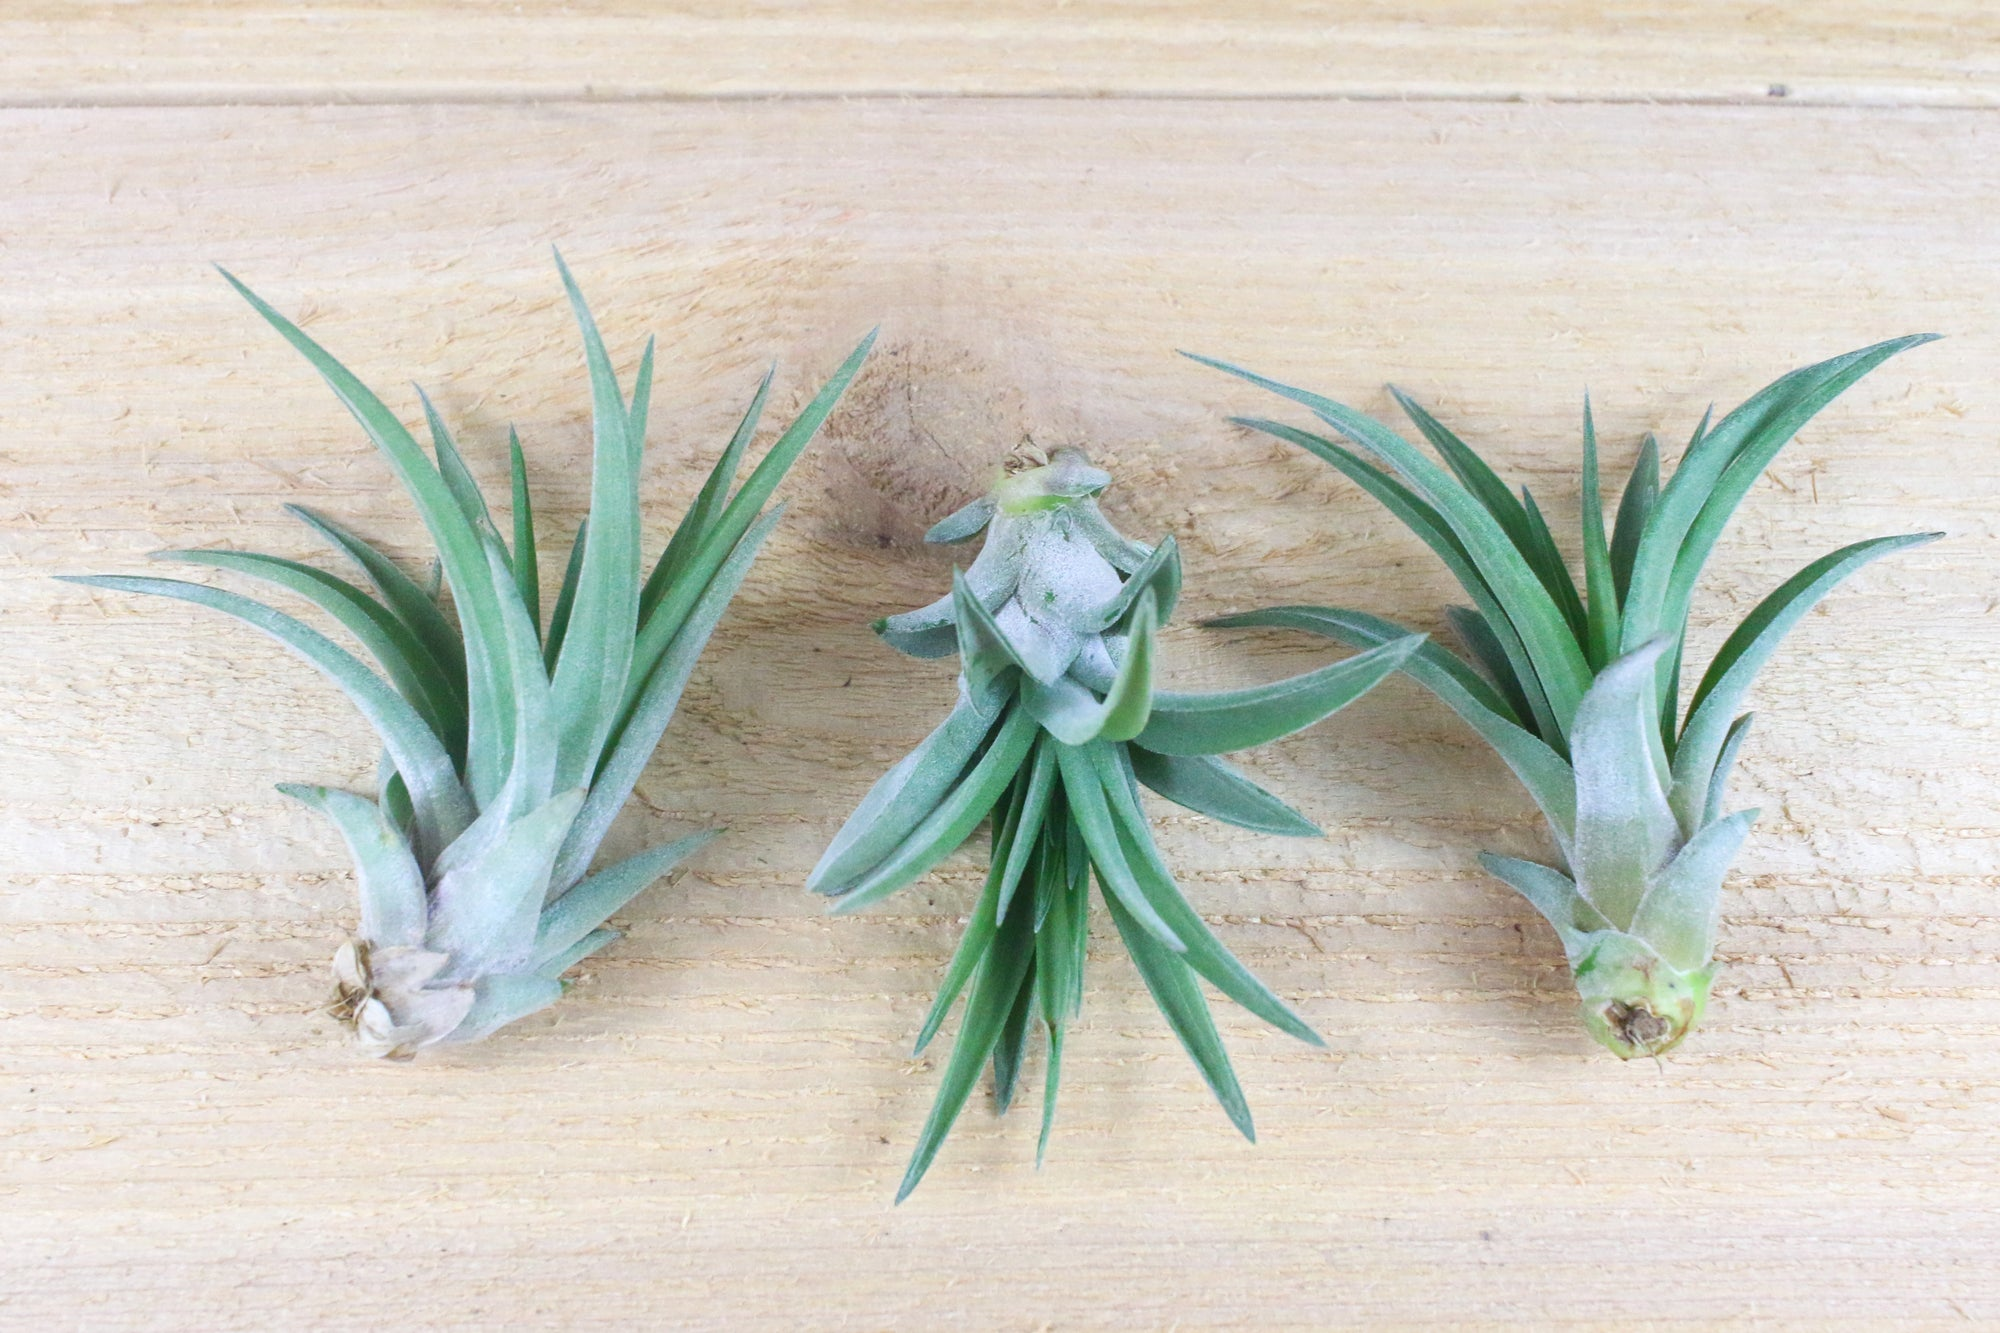 Sale: 50% Off [5, 10 or 15 Pack] Tillandsia Velutina Air Plants from AirPlantShop.com